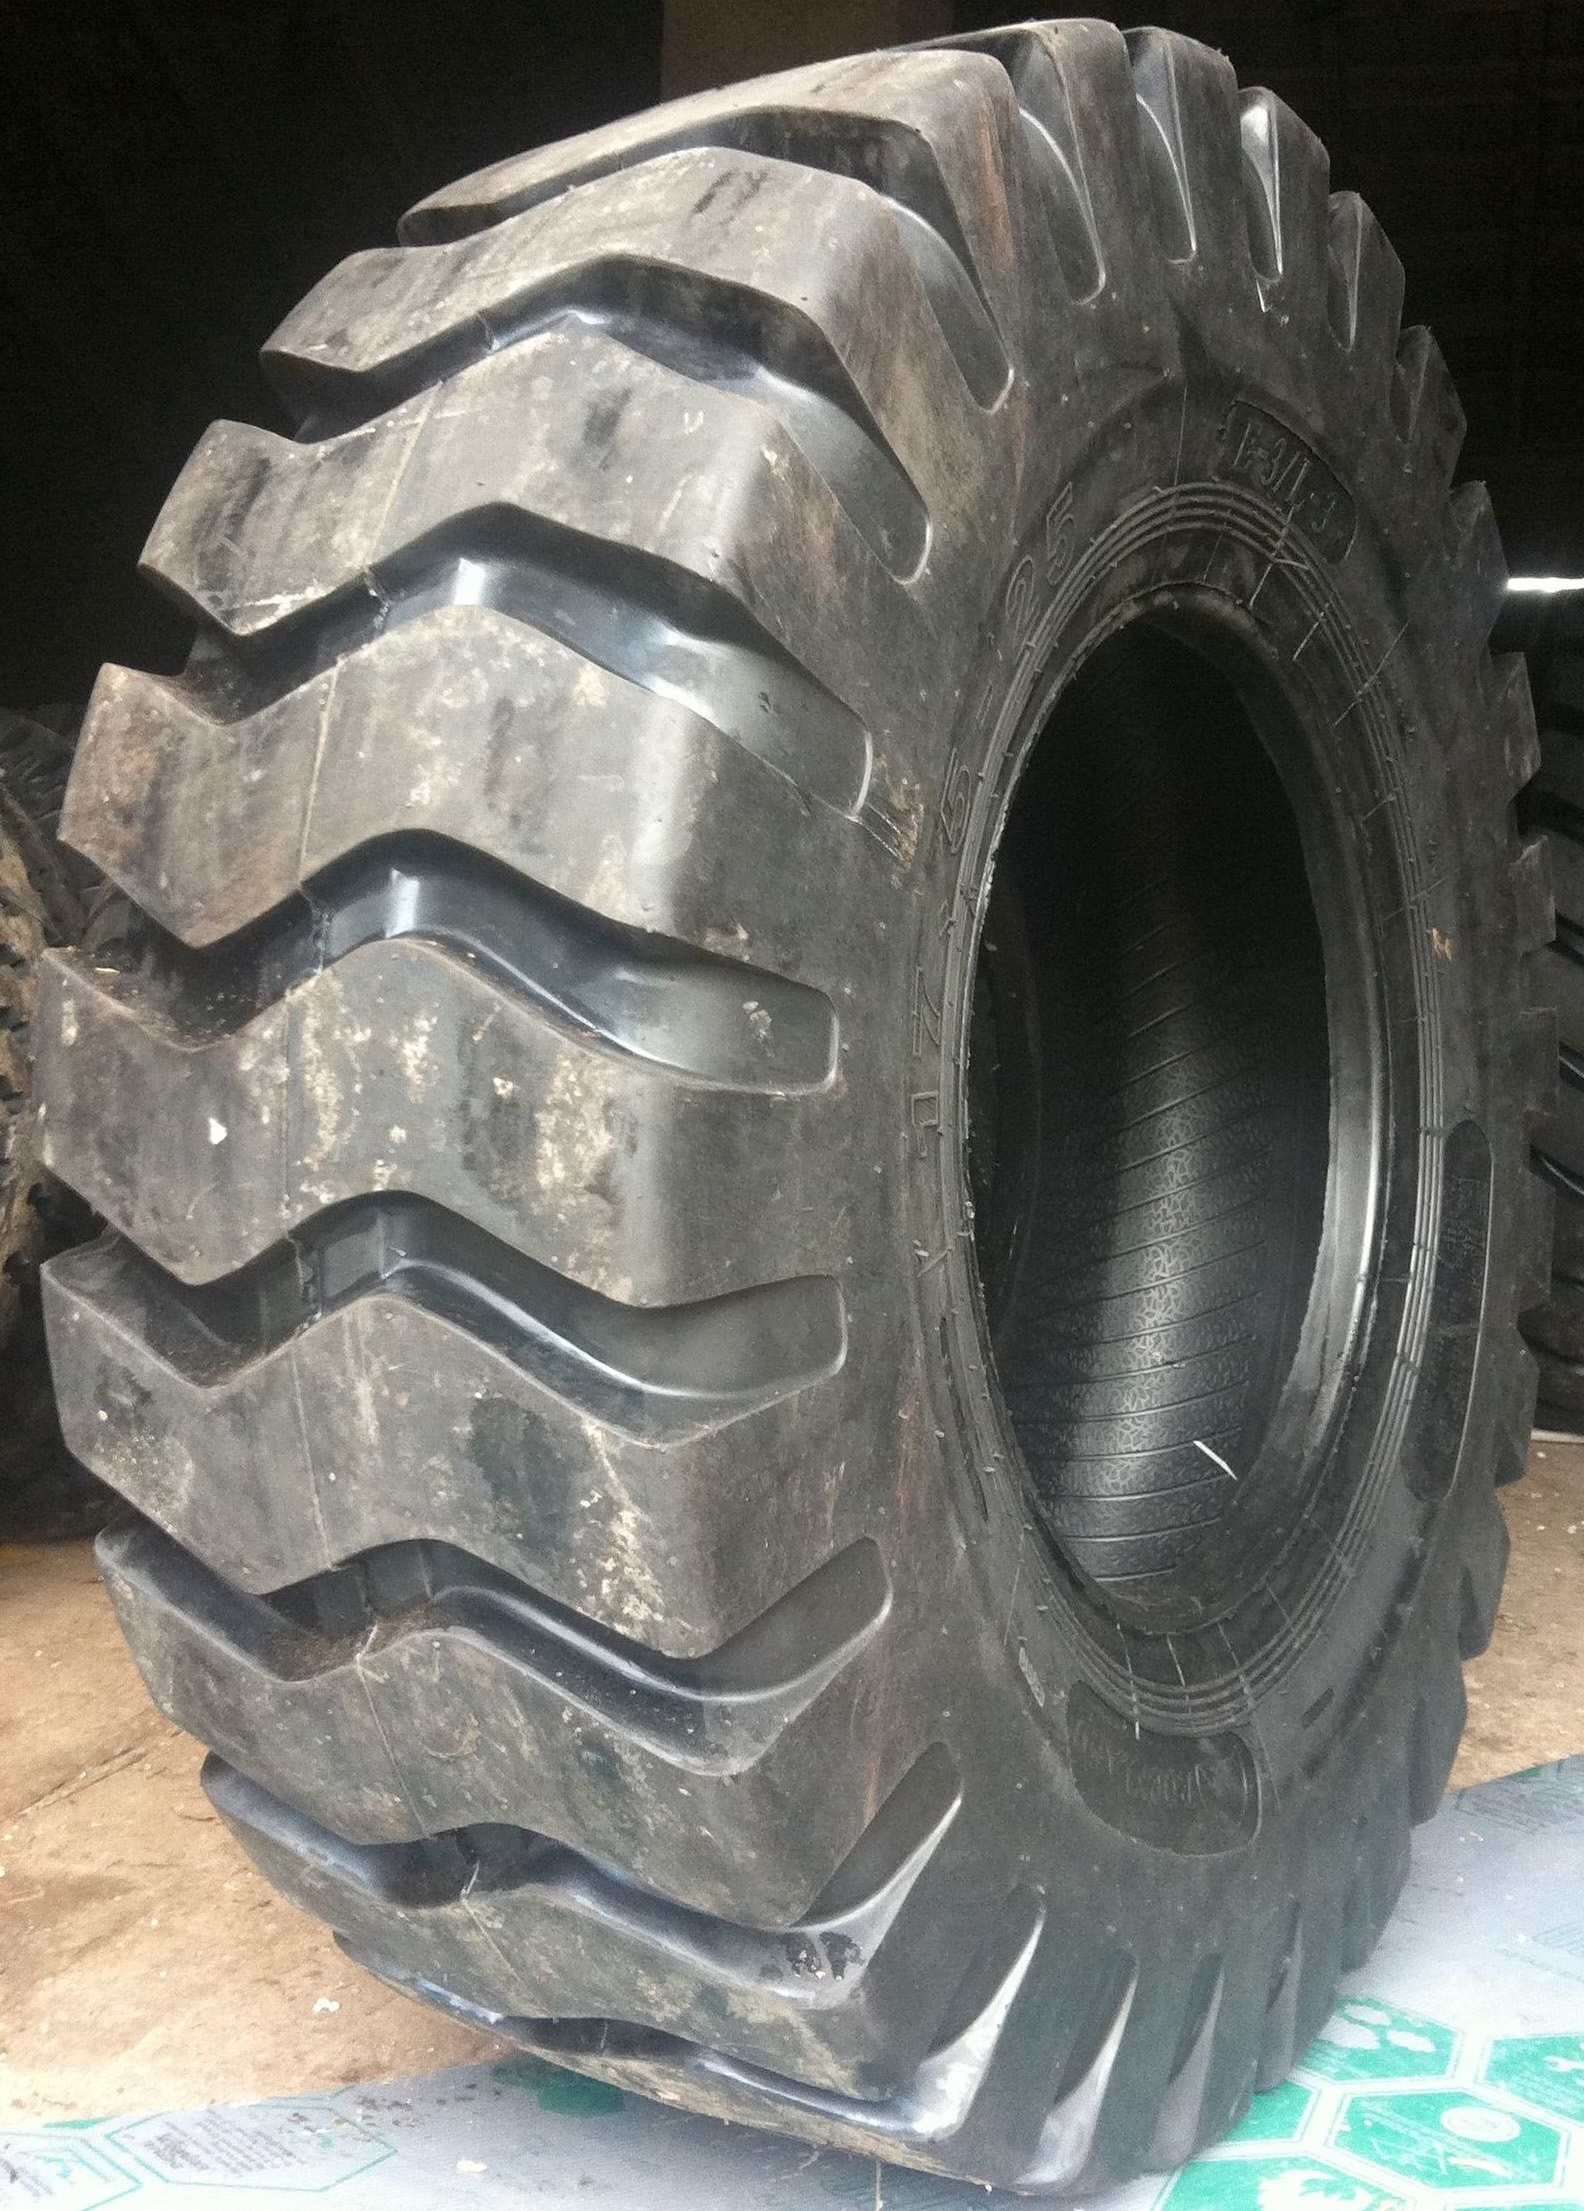 Truck Tires for Sale at Wholesale Prices 29.5-25 Loader Tires Truck Tires for Sale at Wholesale Prices